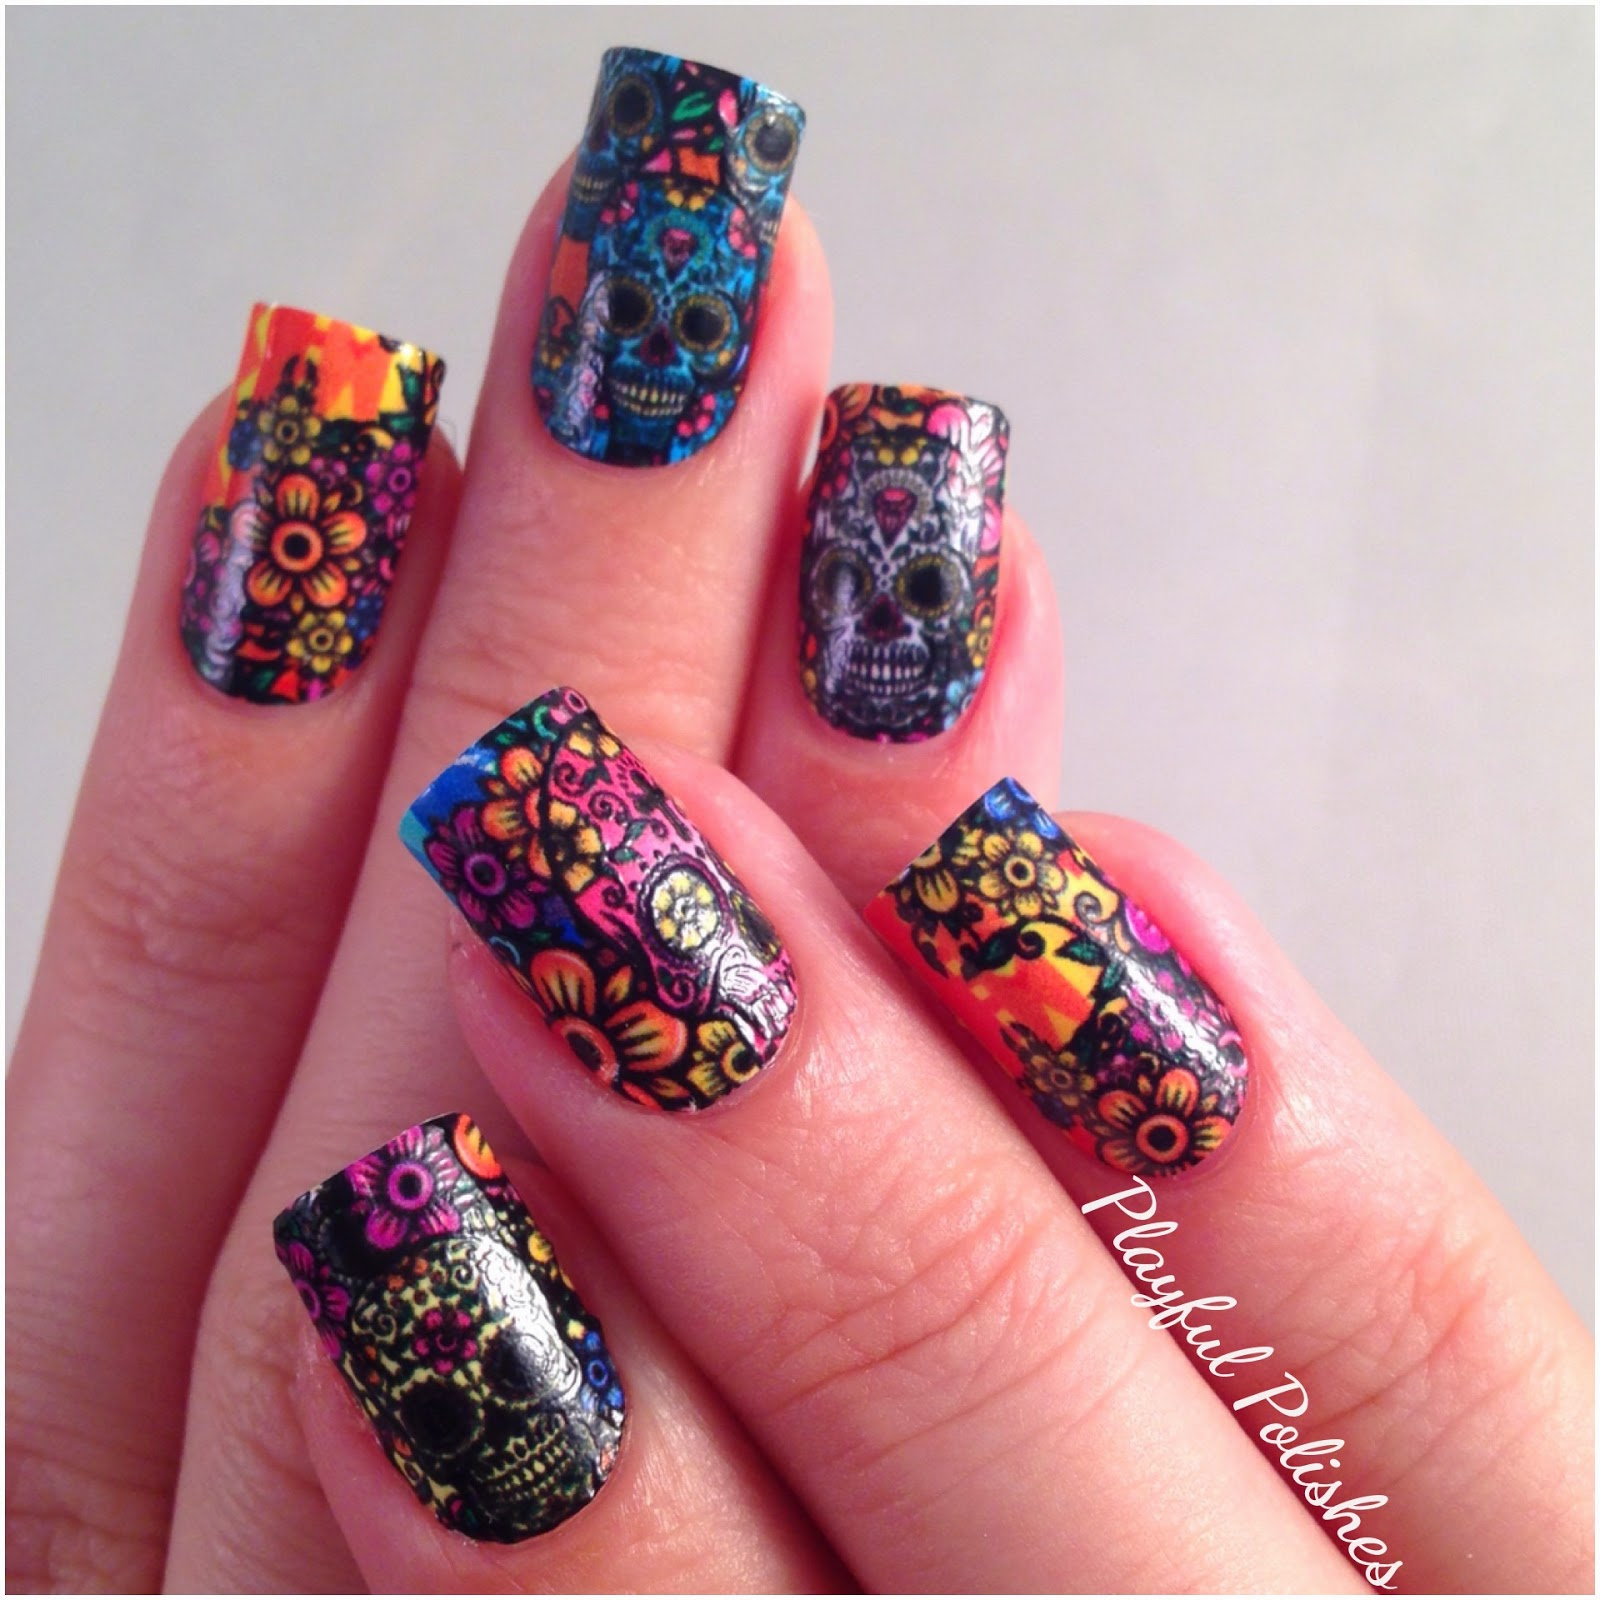 Playful Polishes: NCLA NAIL WRAPS/SUGAR SKULL NAILS